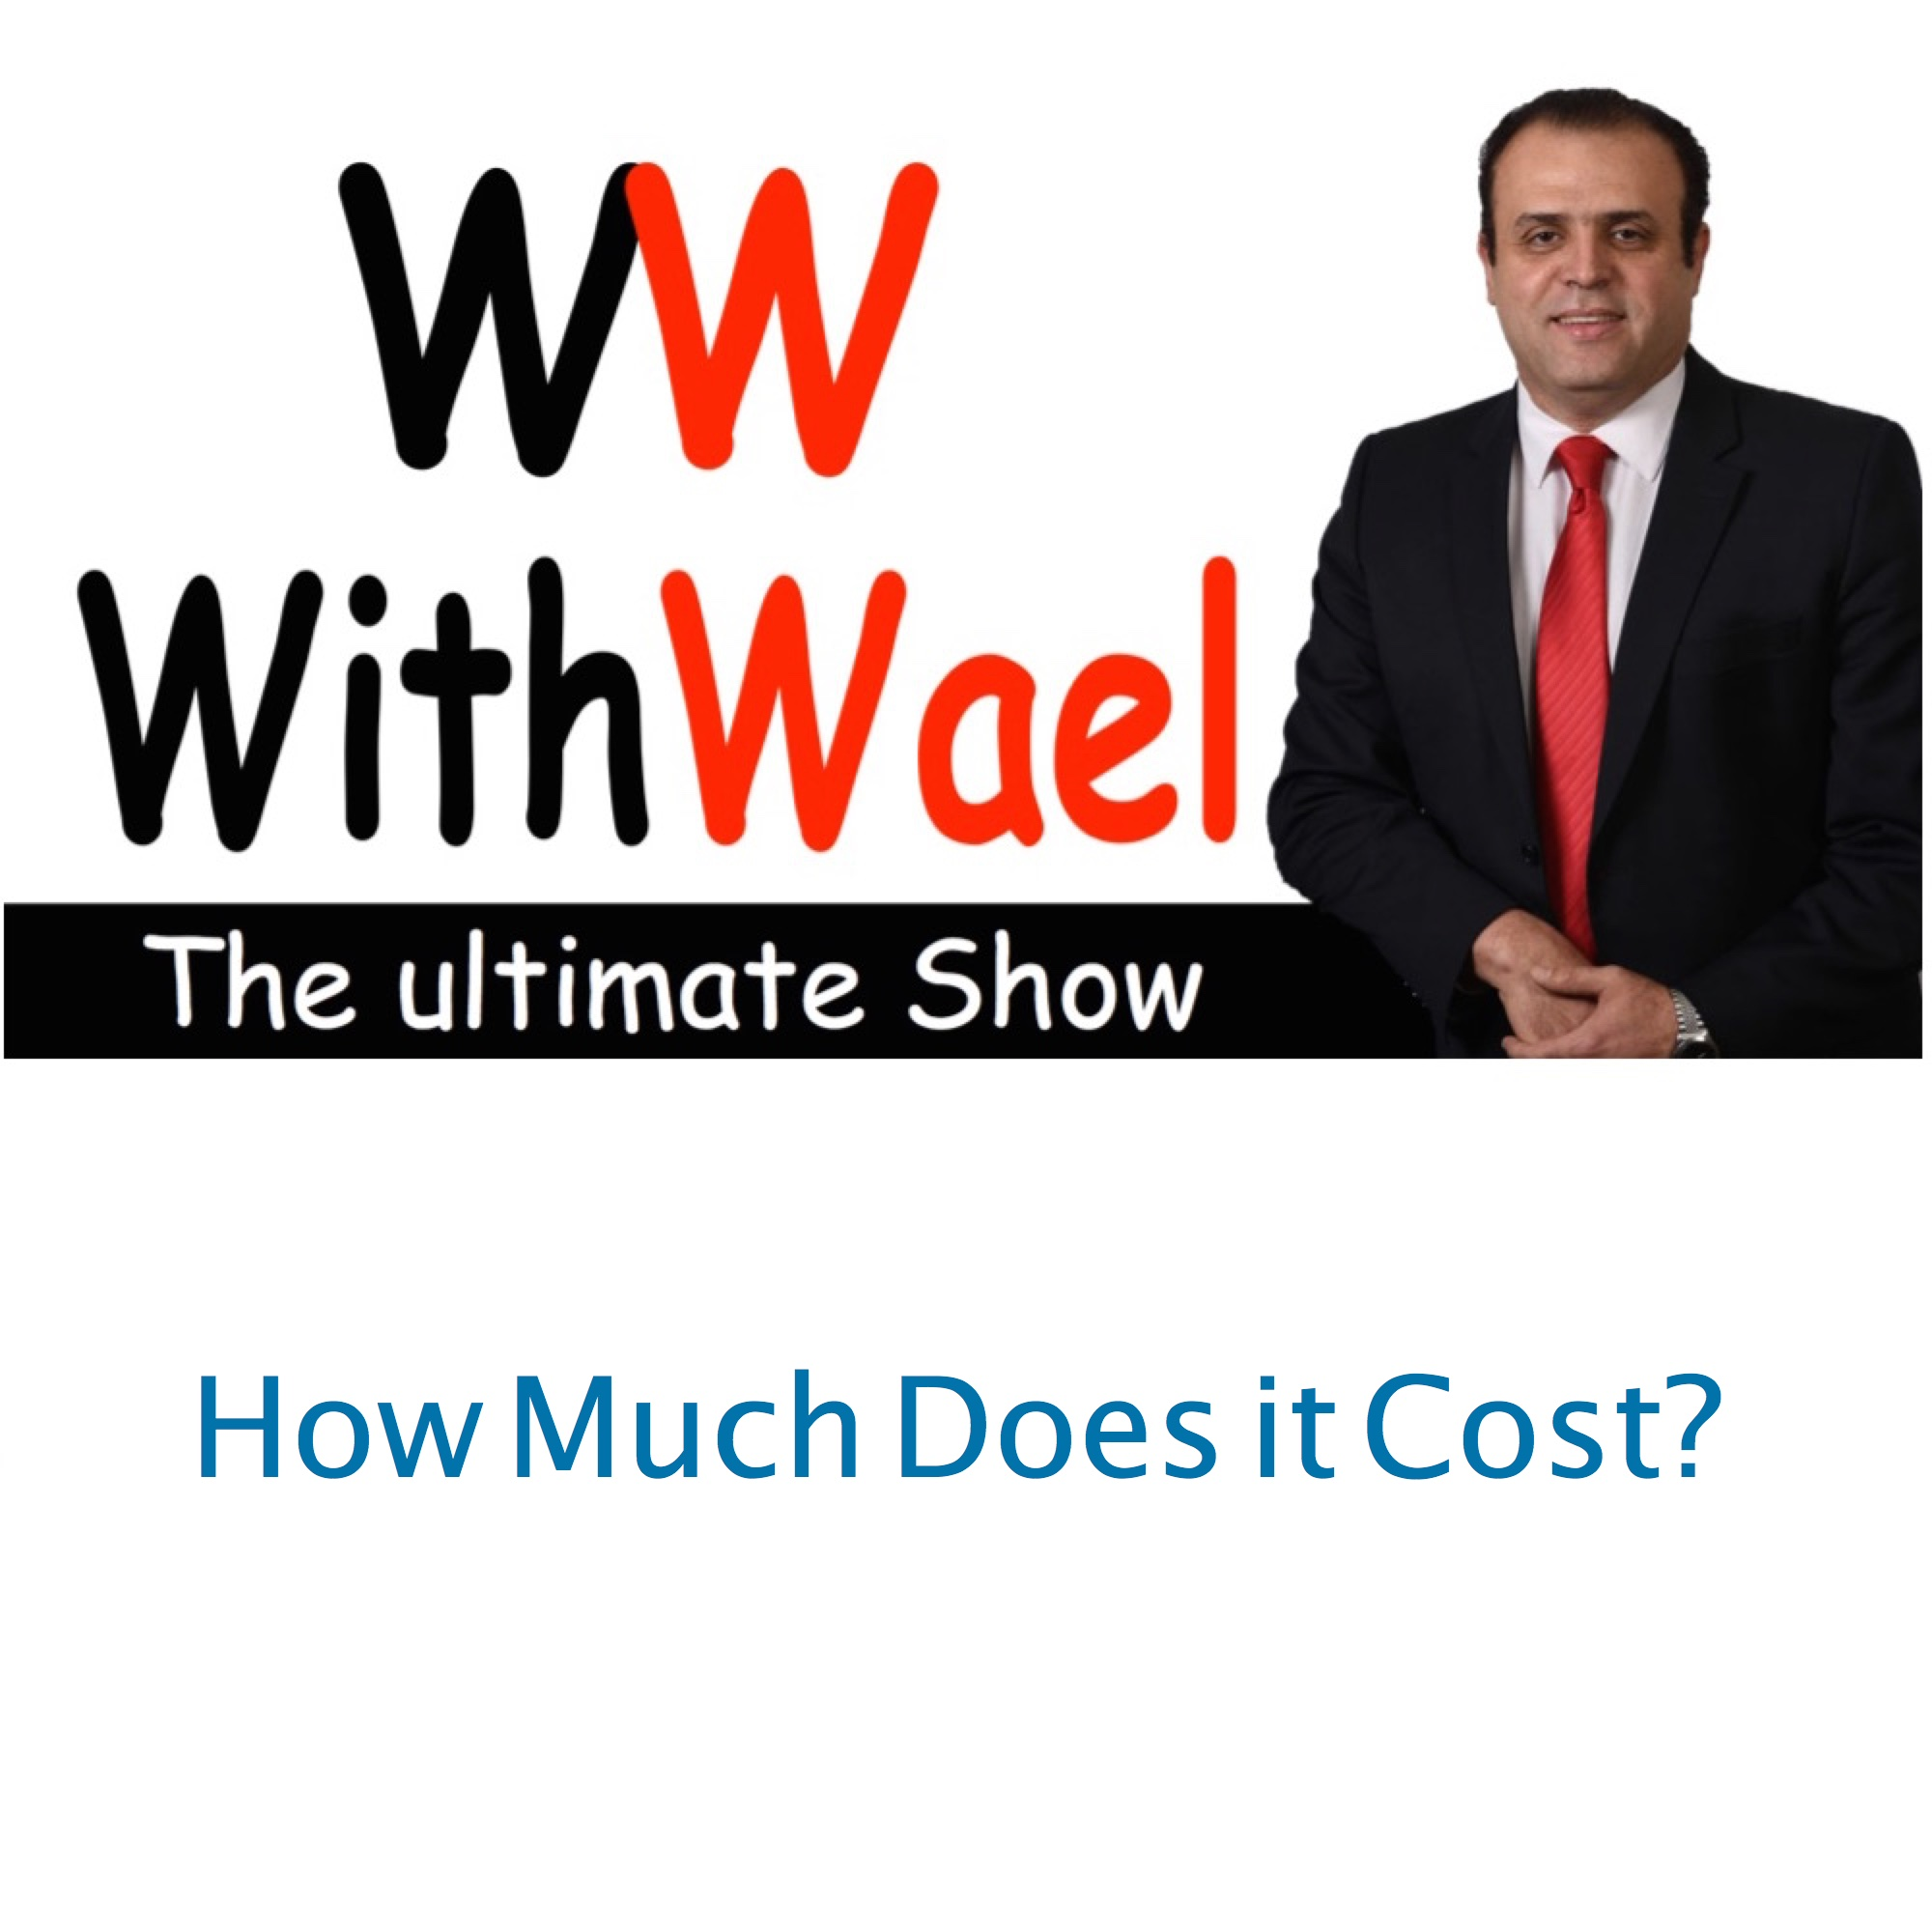 withwaellogo1000x1000-how-much-does-it-cost